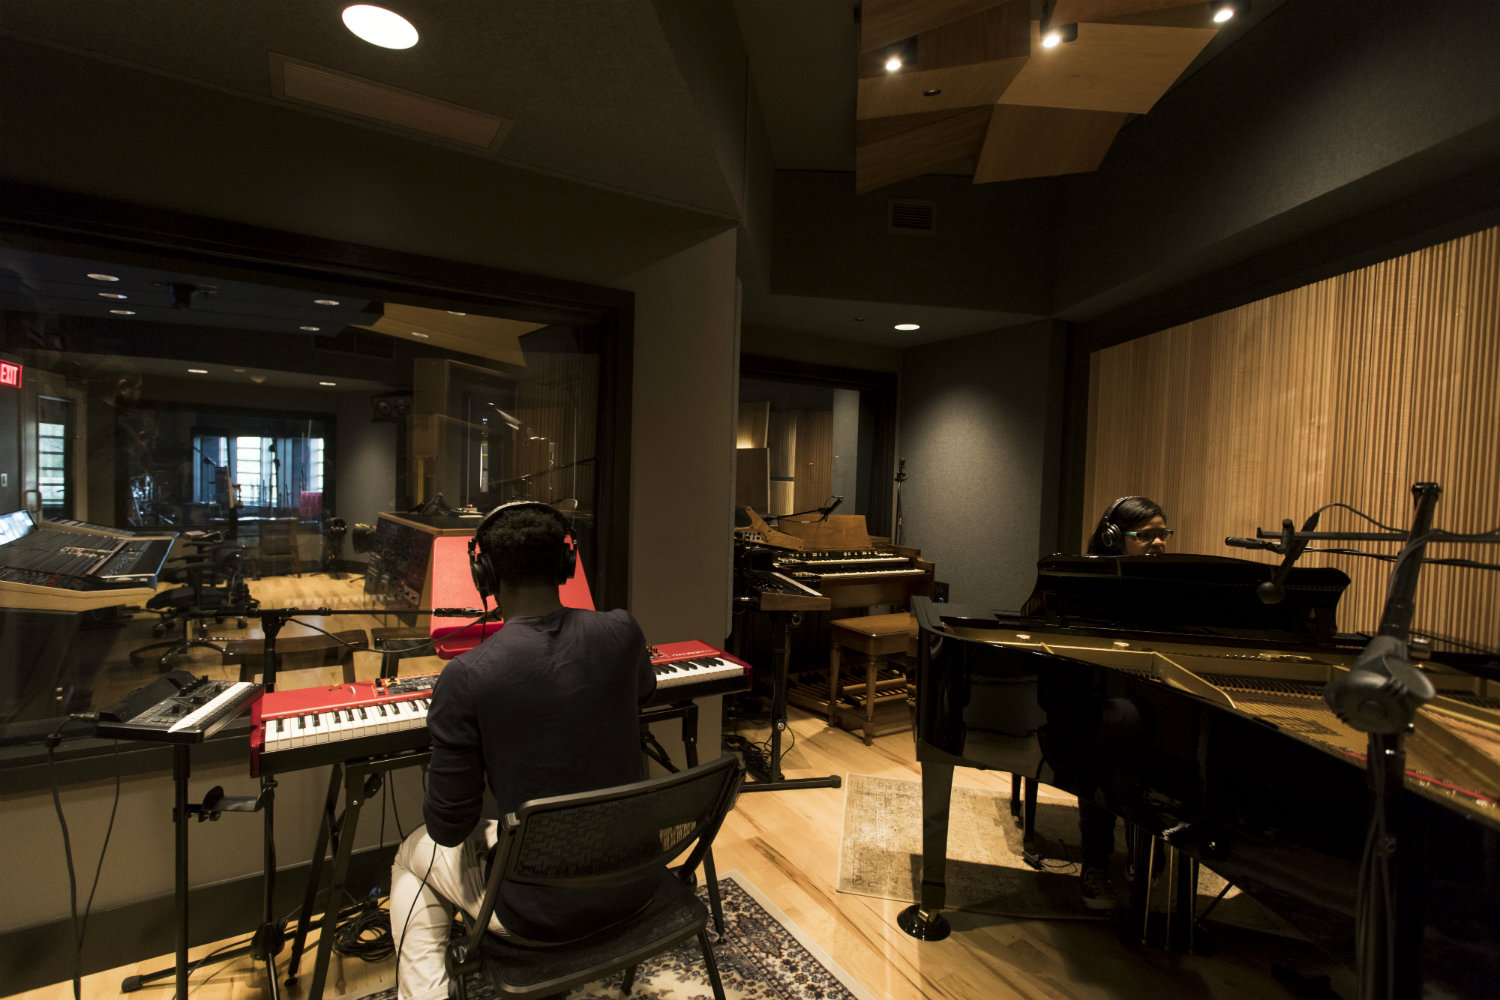 WSDG has designed a state-of-the art recording /teaching studio for the expanding campus of Liberty University, America's largest private, non-profit Christian university. Live Room Students recording